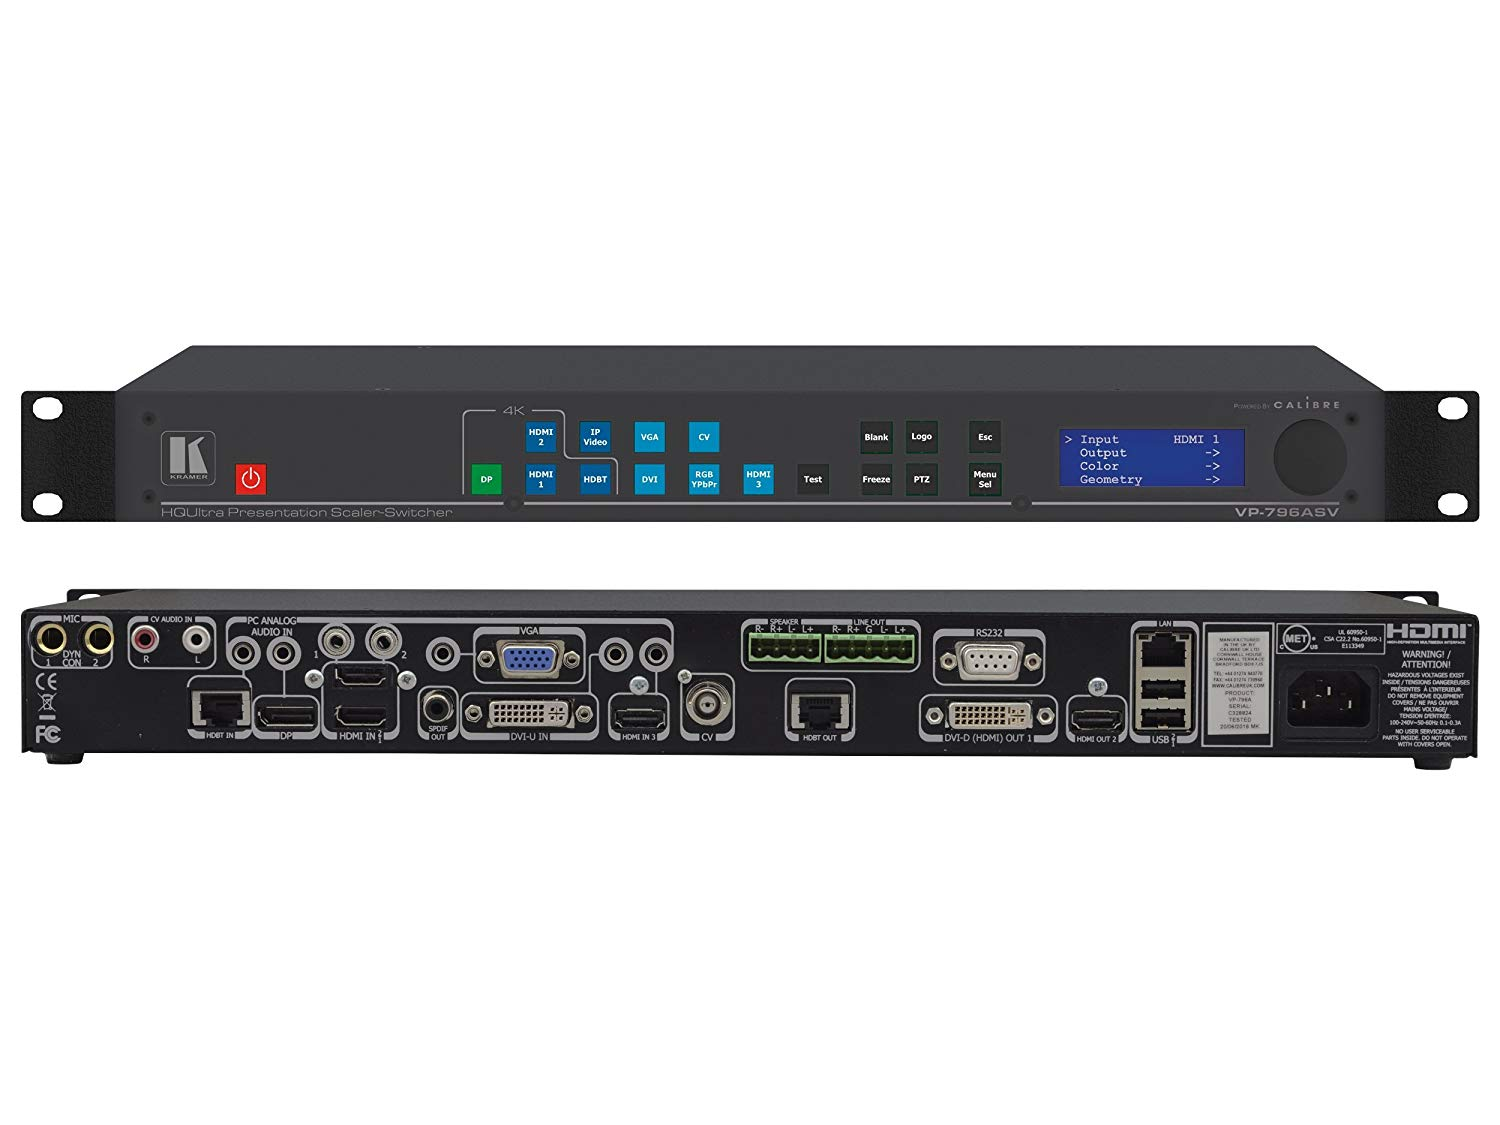 Kramer VP-796ASV 4K/60 4x2x0/HDBaseT/Legacy Presentation Switcher/Scaler w Ultra-Fast Input Switching/H.264